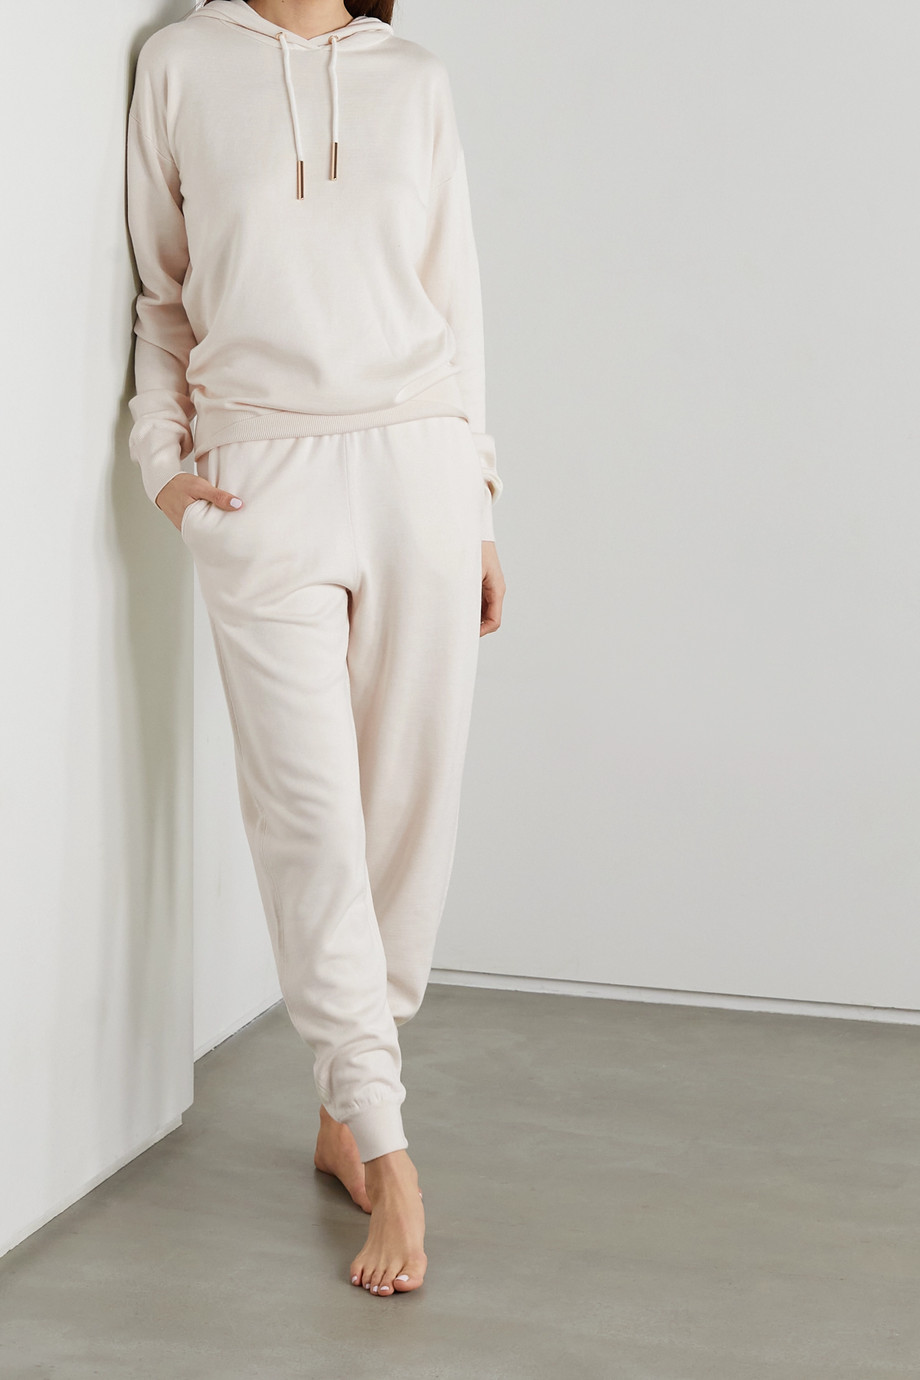 Olivia von Halle Gia Moscow silk-blend hoodie and track pants set